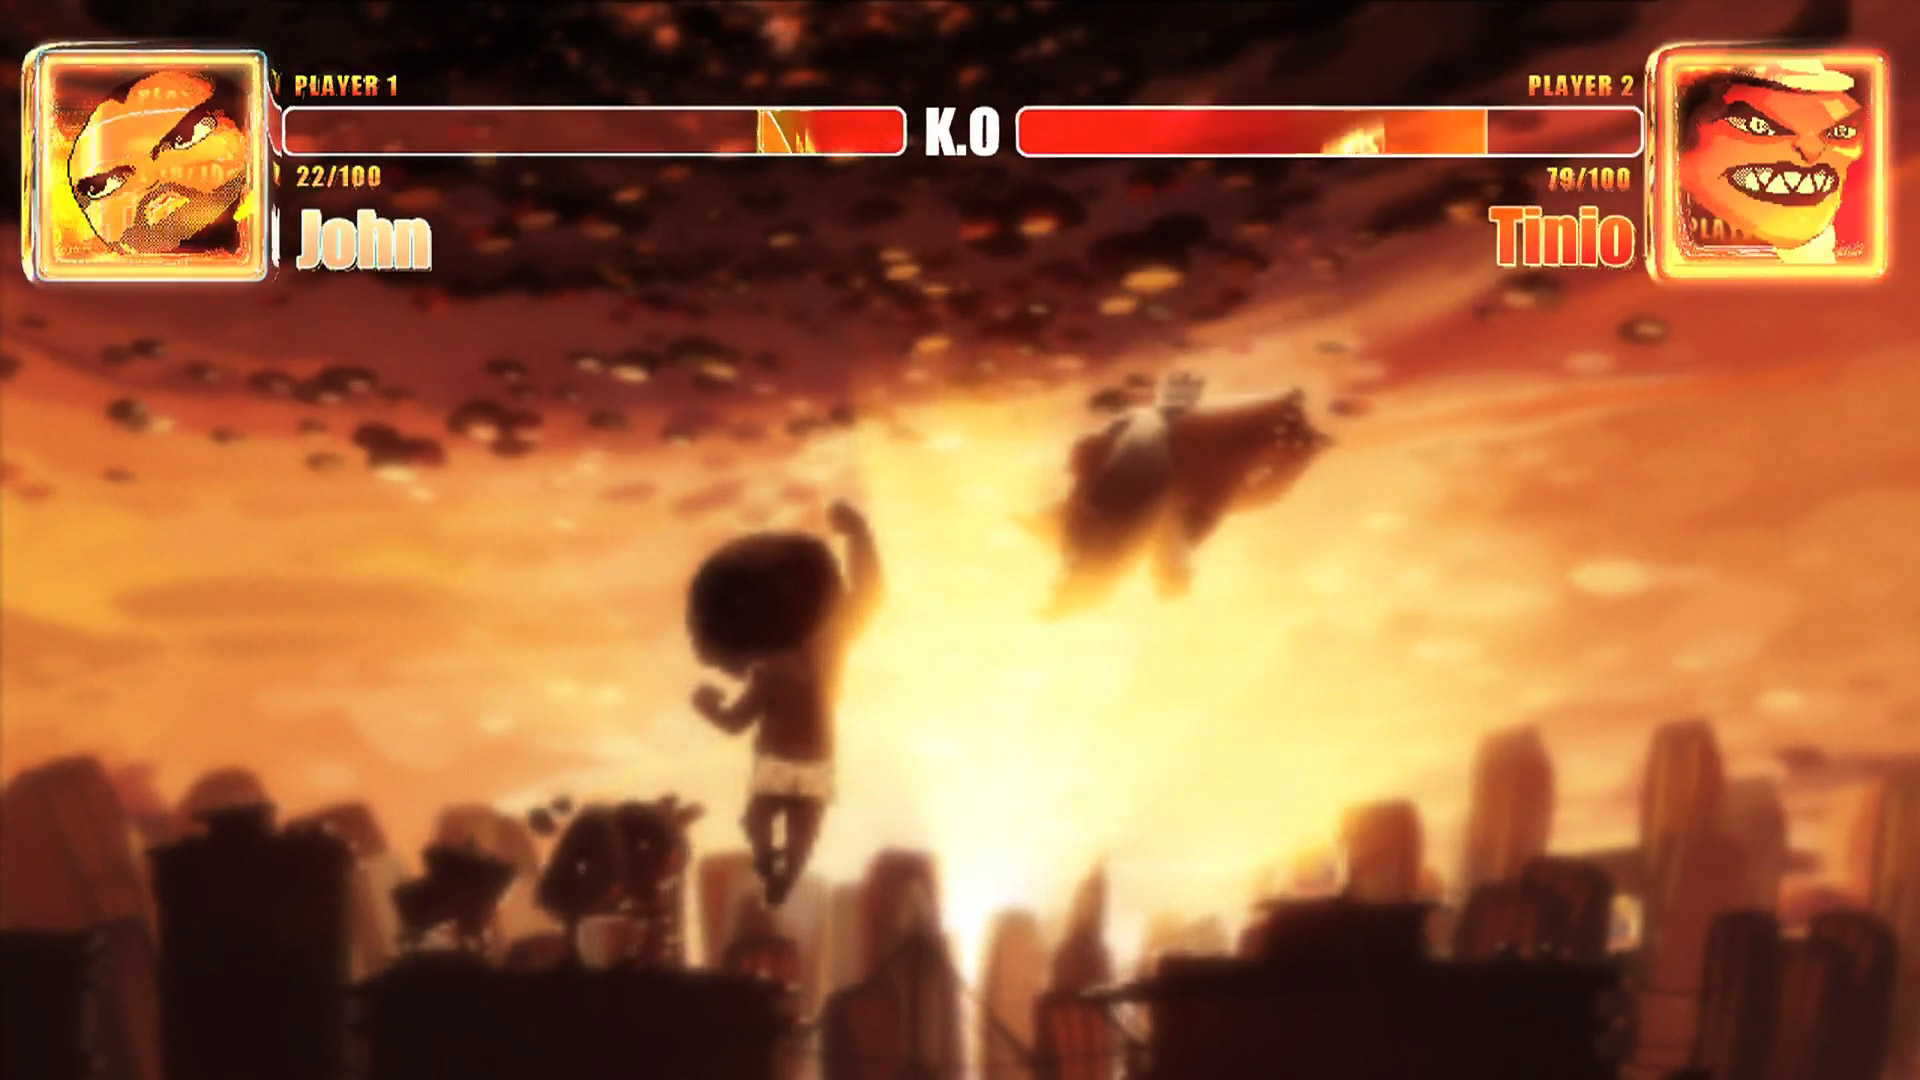 8-bit-action-packed-video-game-inspired-animated-short-06.jpg